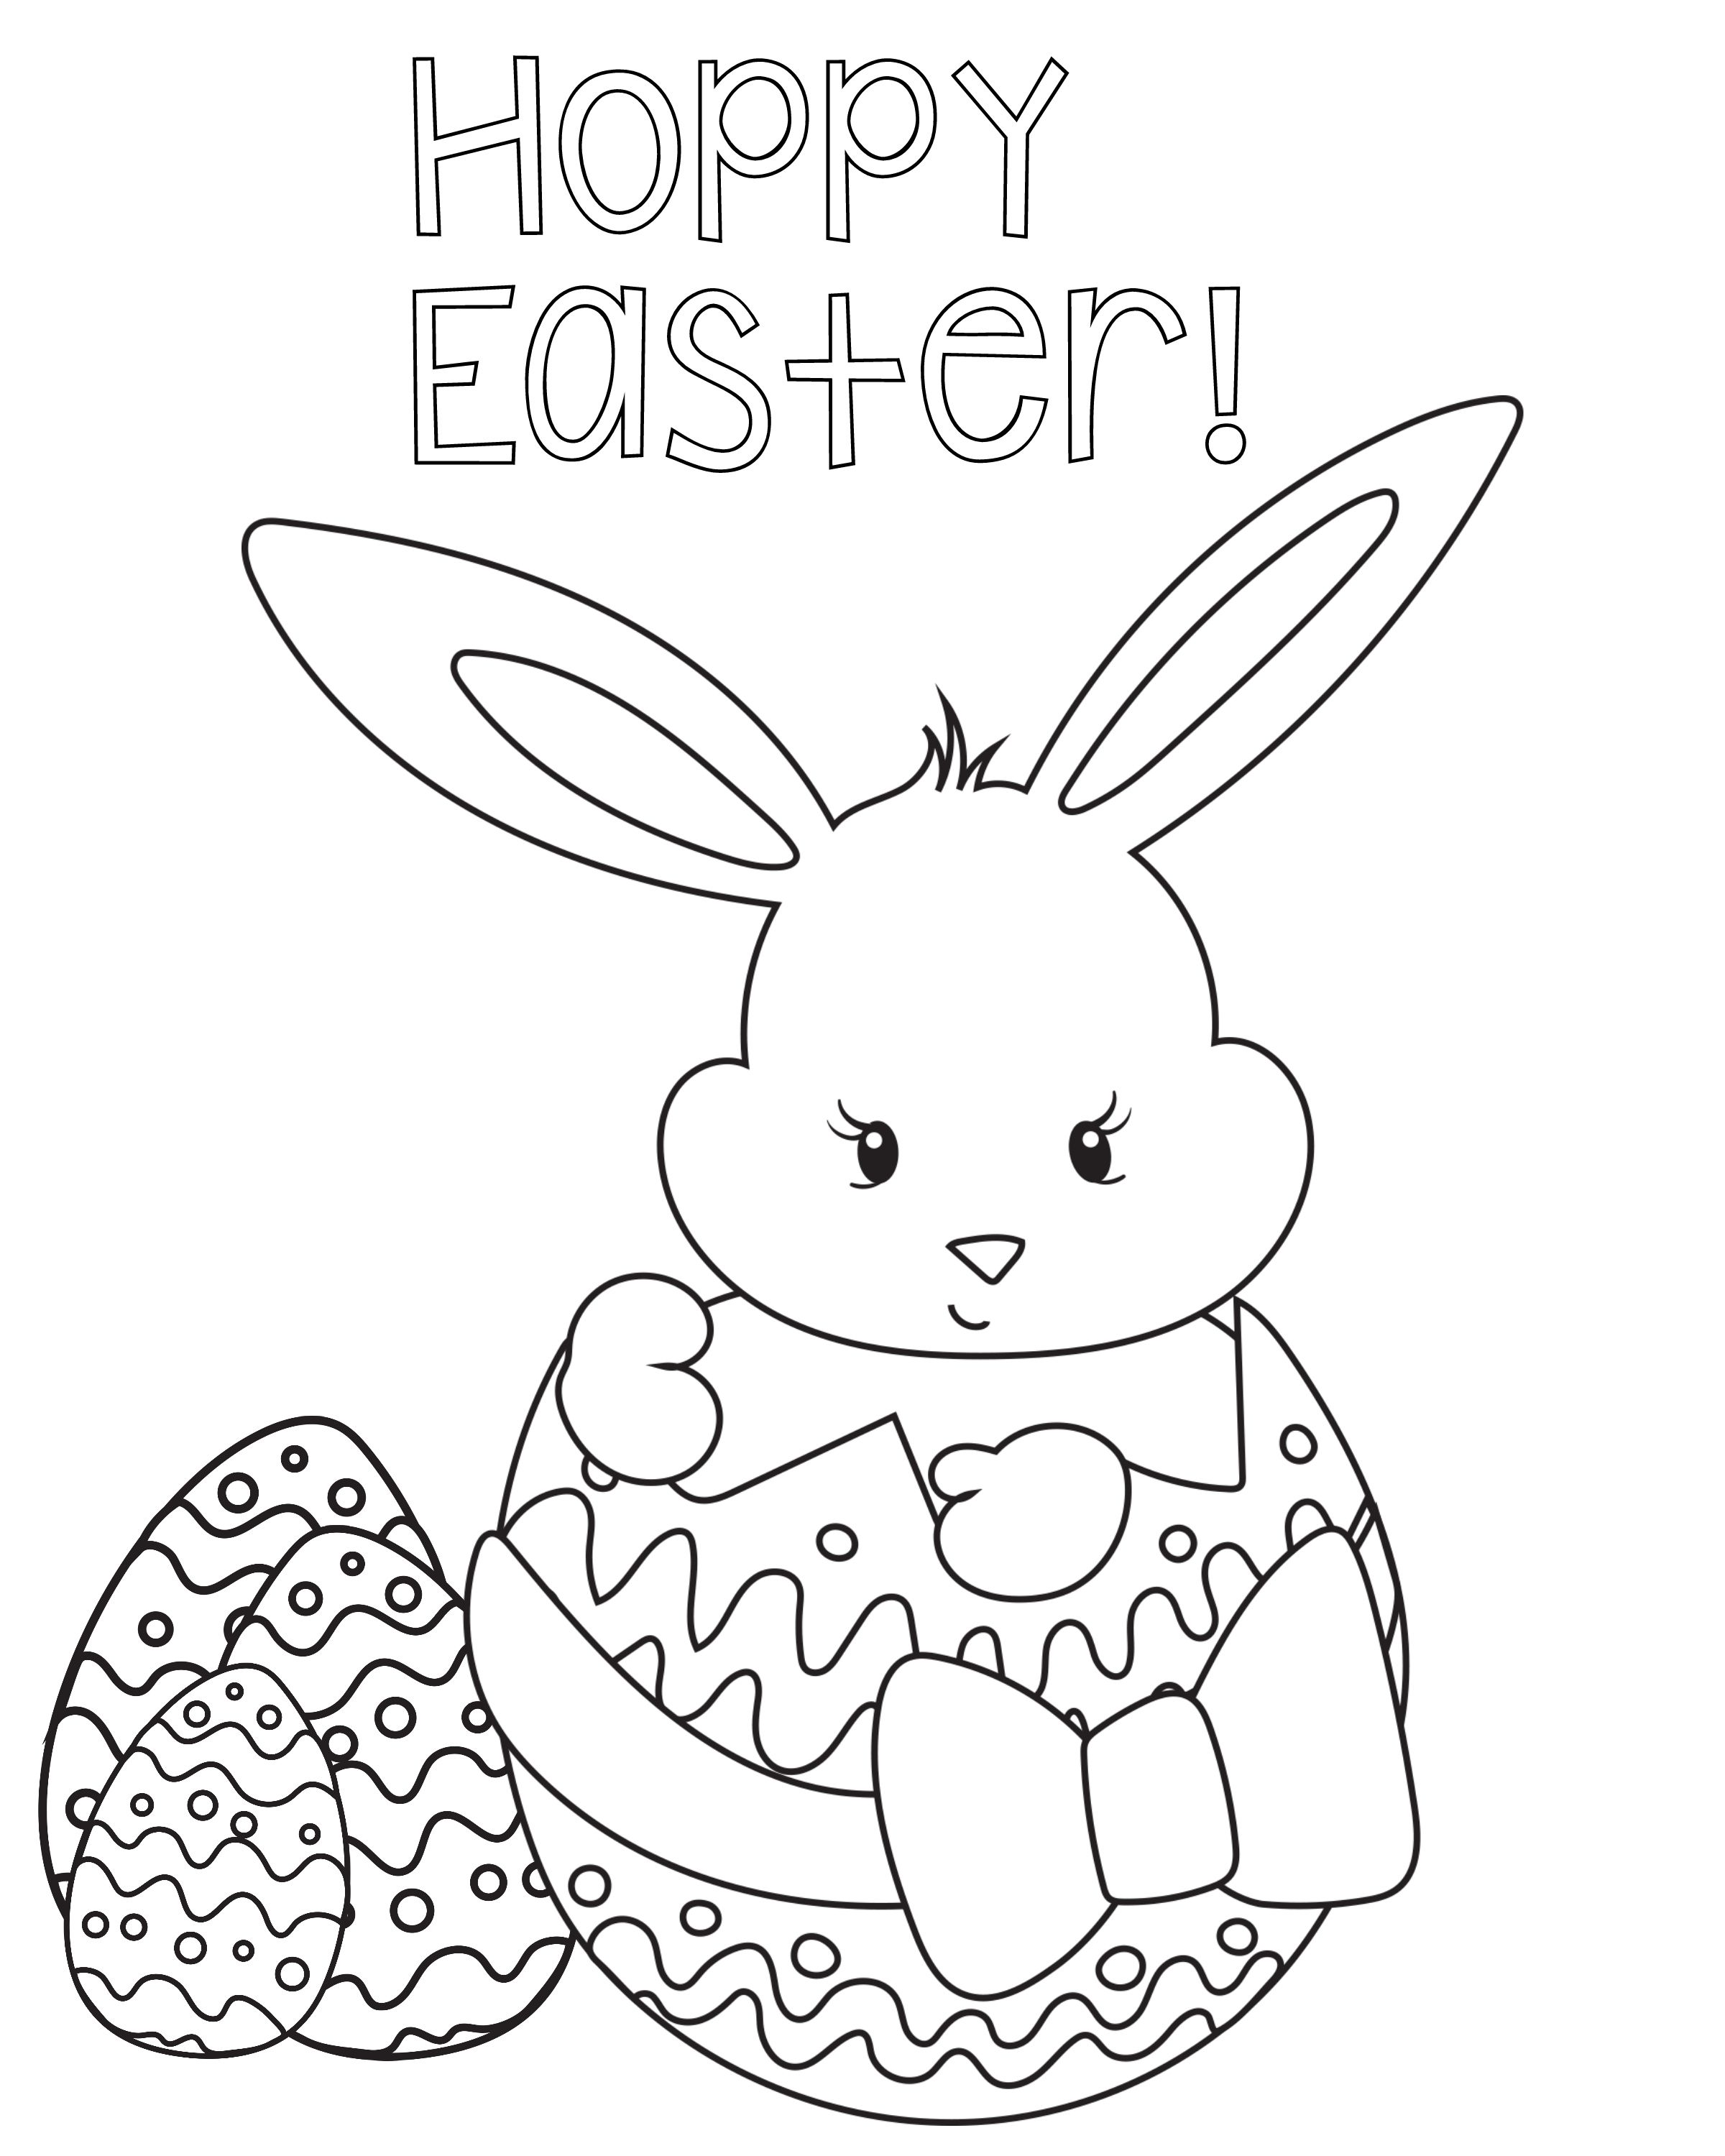 Many Easter Eggs coloring page for kids, easter coloring